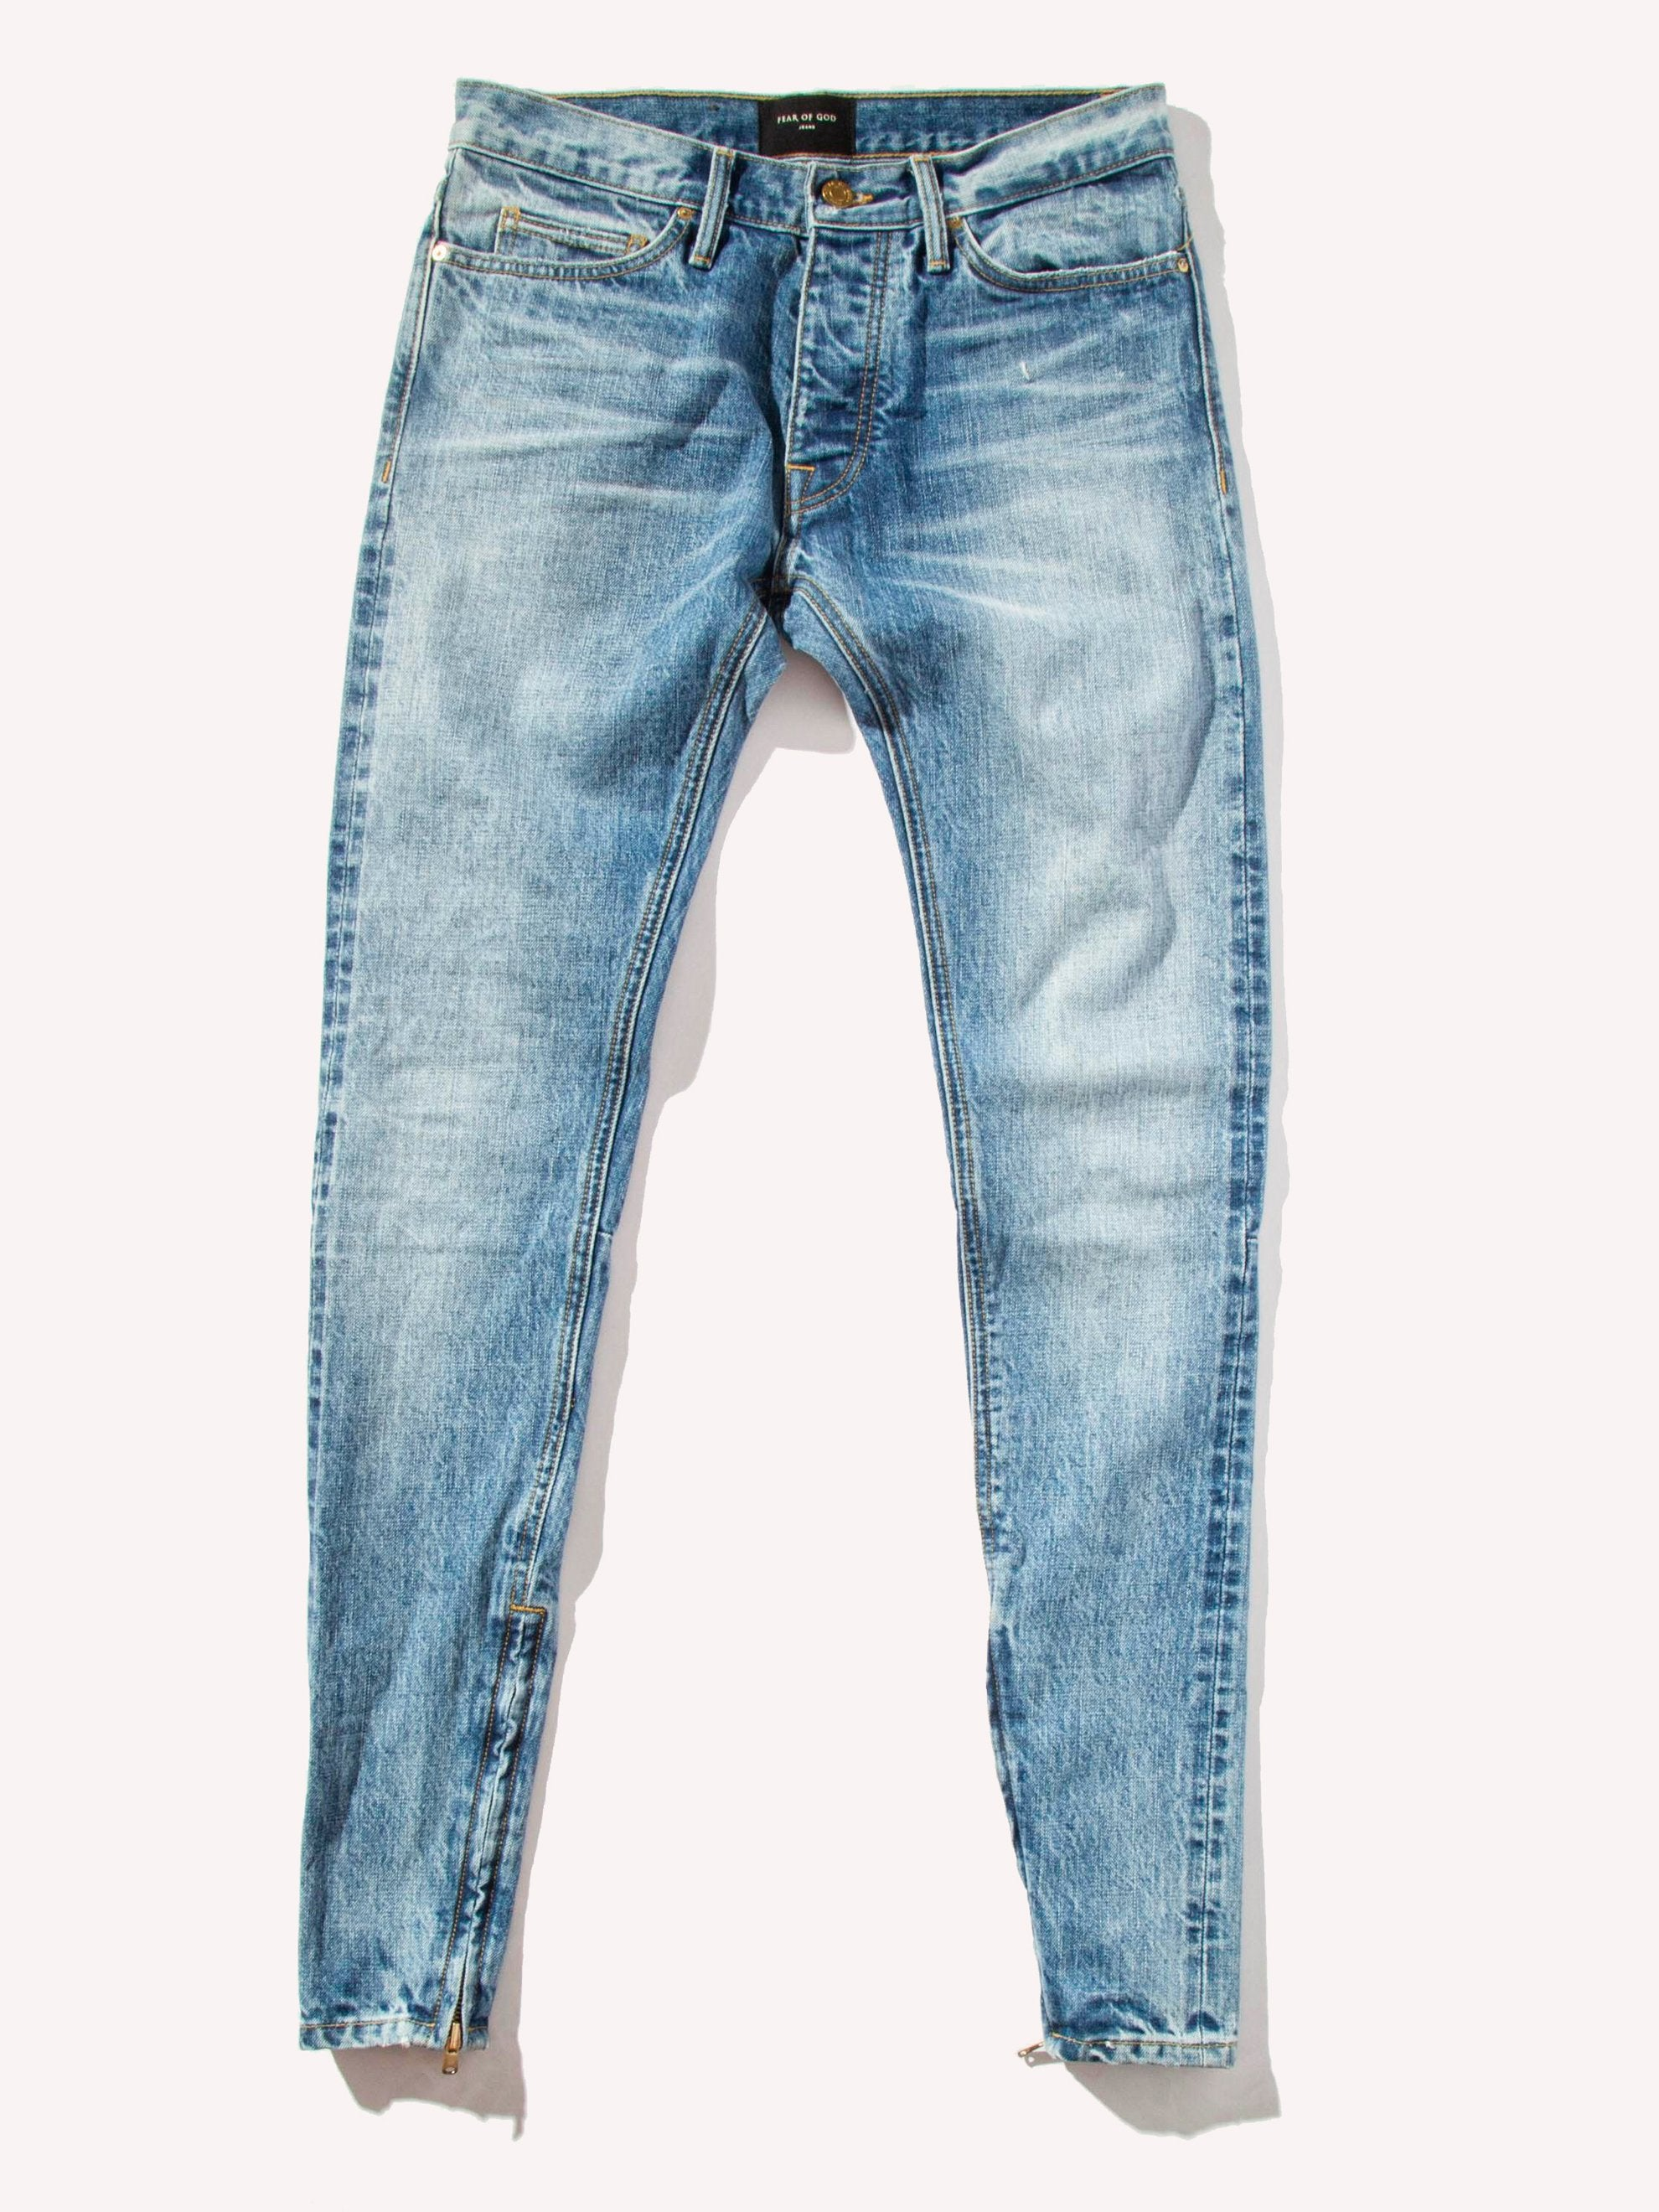 Vintage Indigo The Vintage Wash Selvedge Denim Jean 1